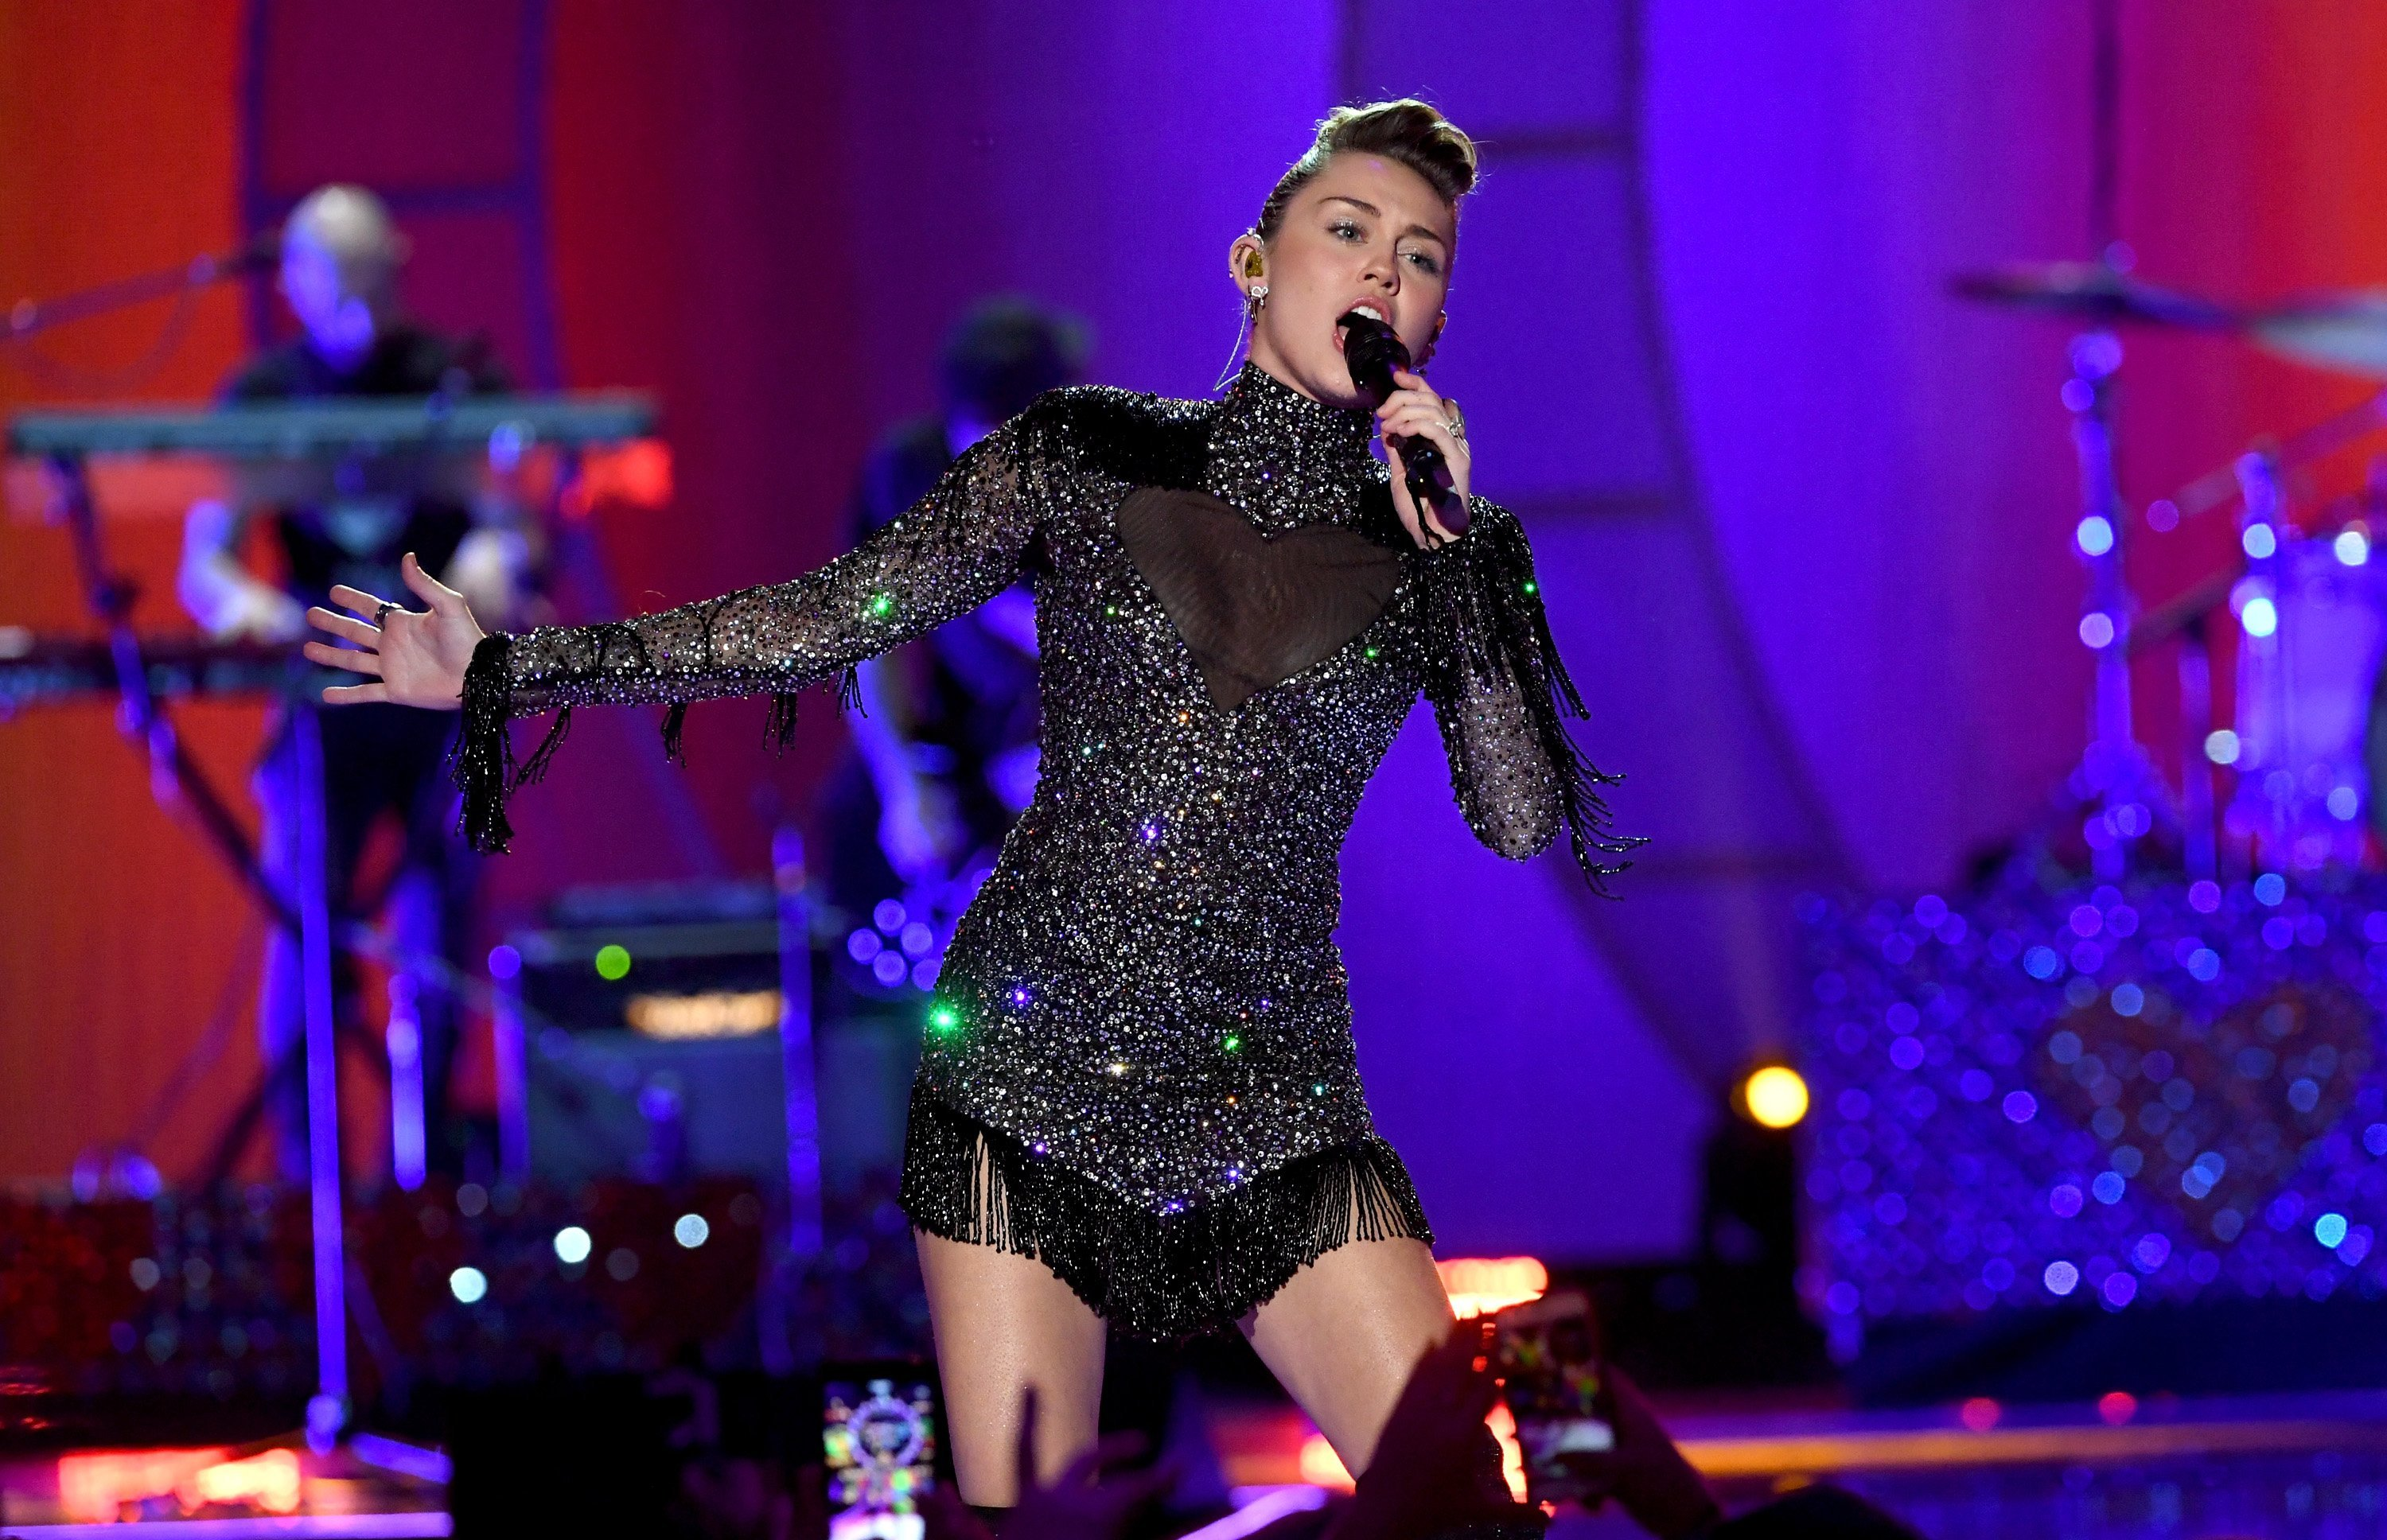 Miley Cyrus performs onstage during the 2017 iHeartRadio Music Festival at T-Mobile Arena on September 23, 2017, in Las Vegas, Nevada. | Source: Getty Images.